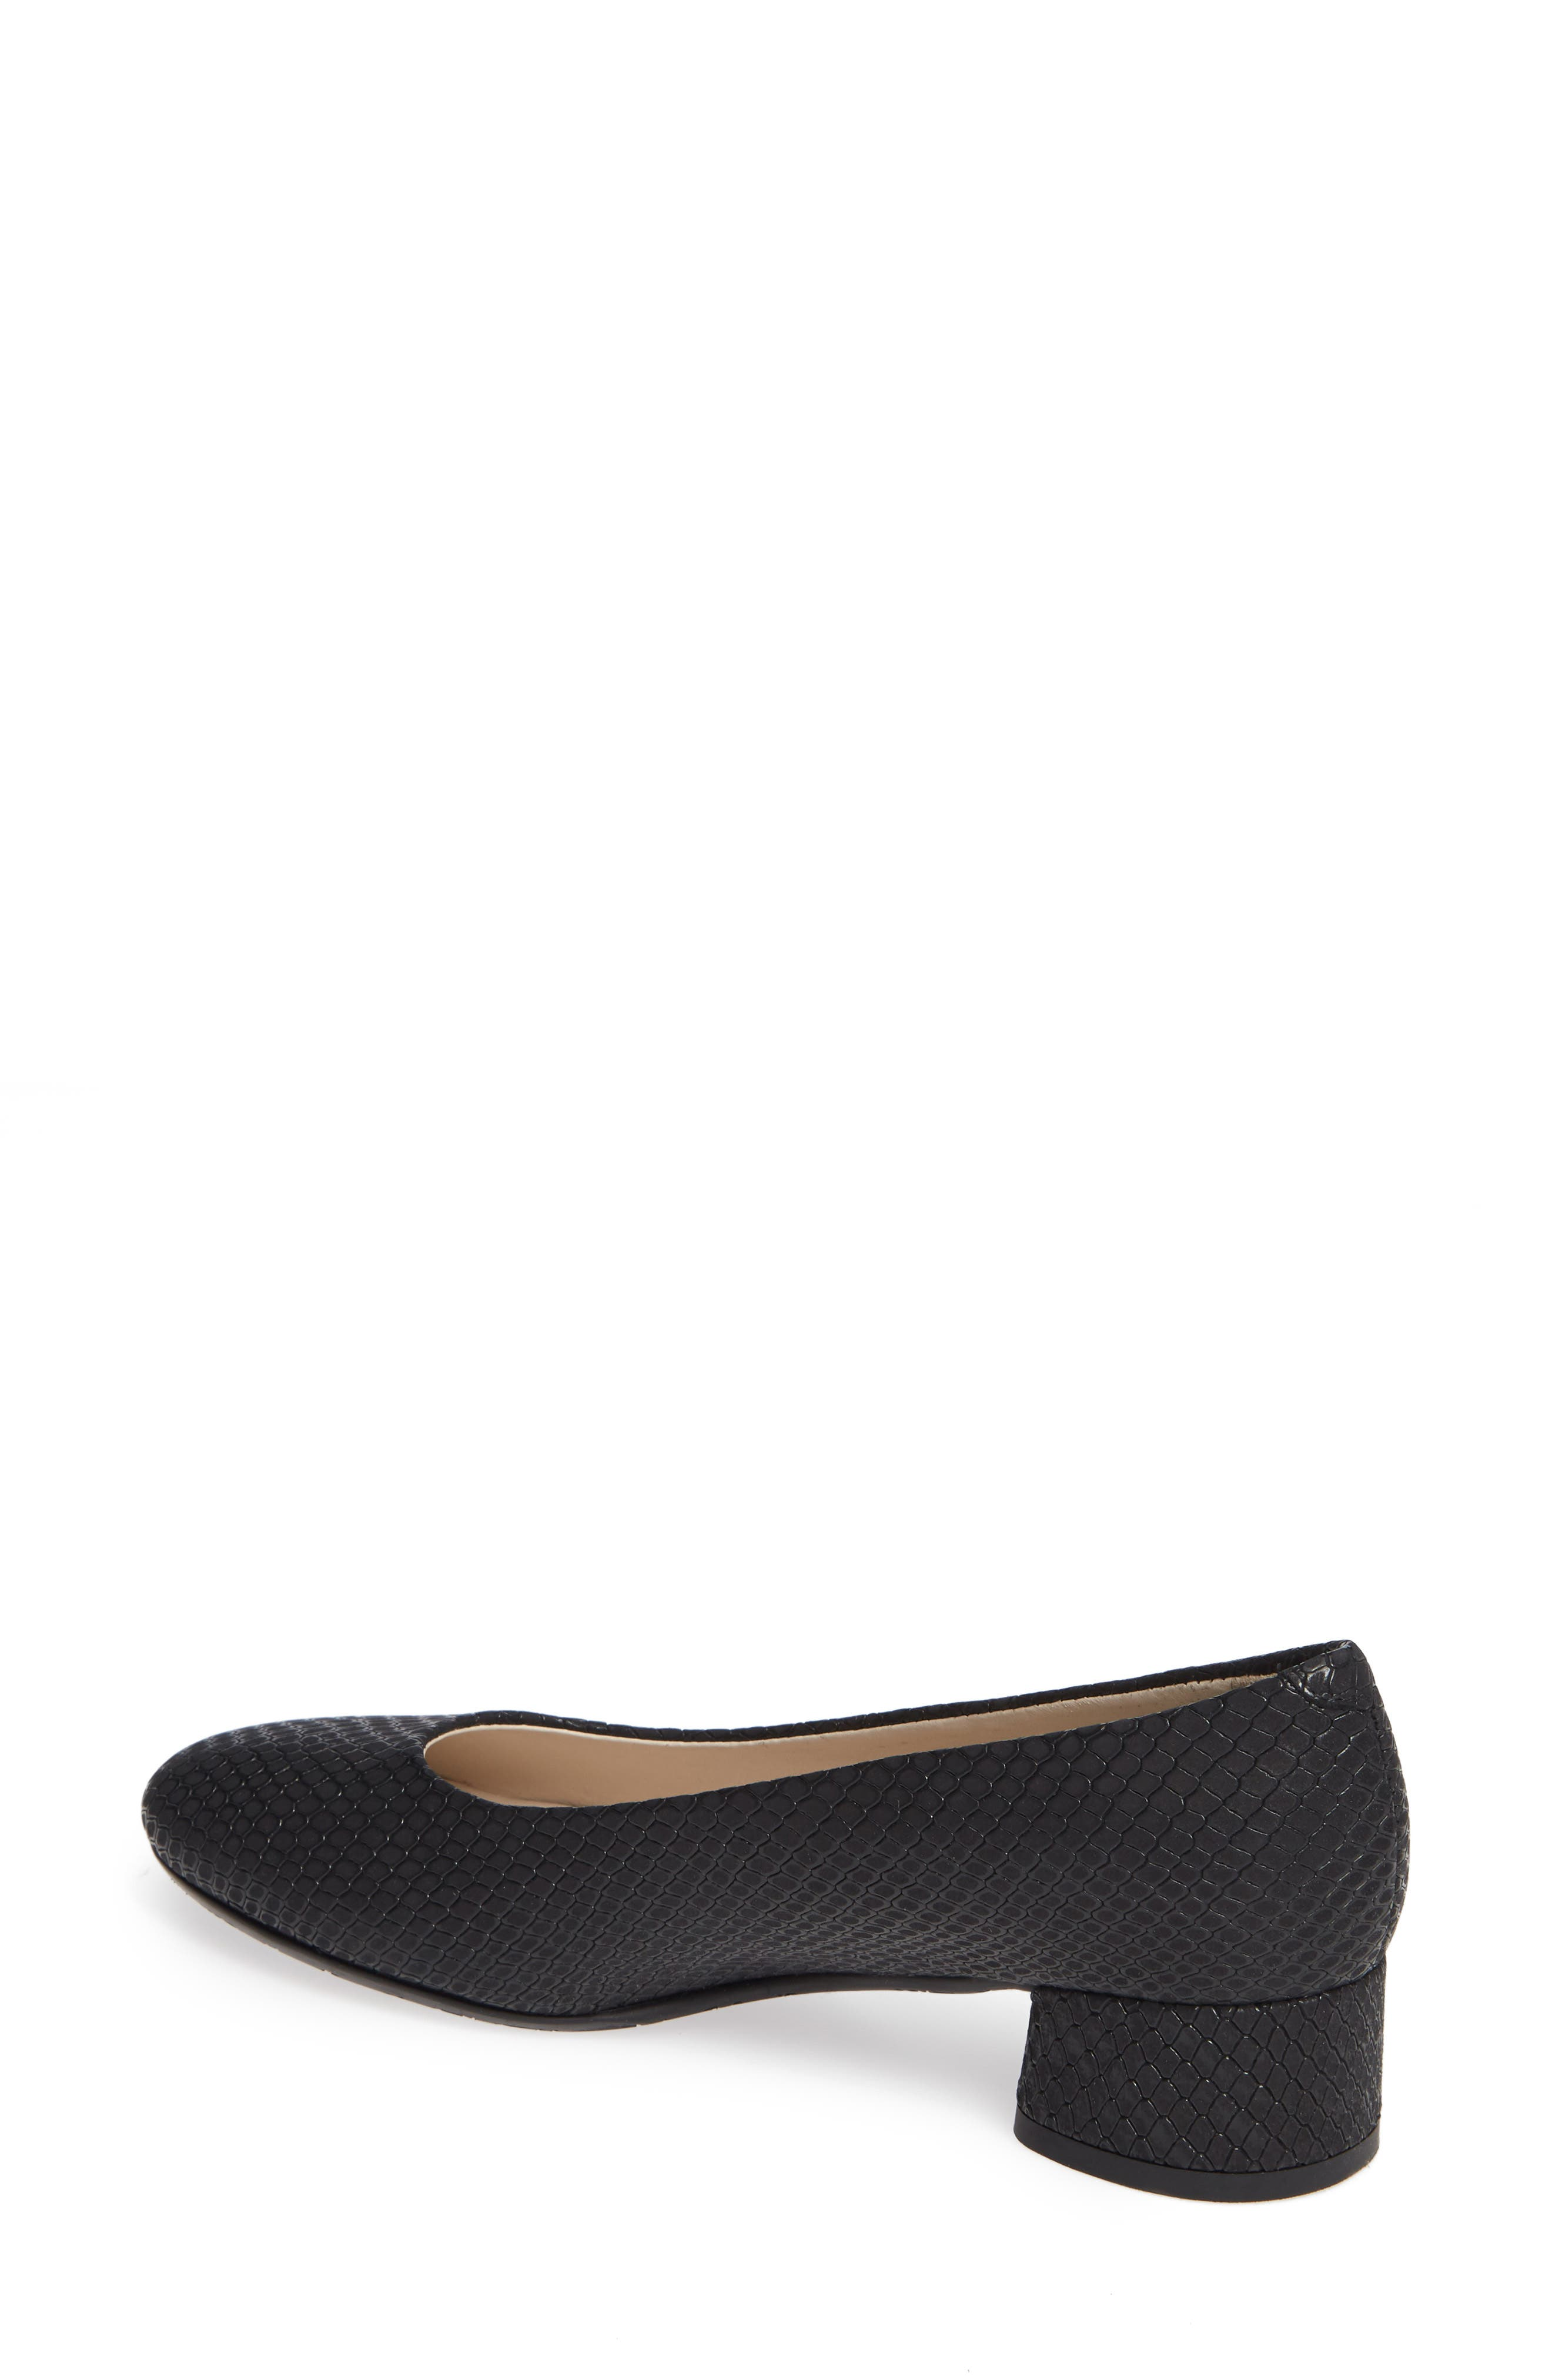 AMALFI BY RANGONI, Record Pump, Alternate thumbnail 2, color, BLACK OXIDE SUEDE